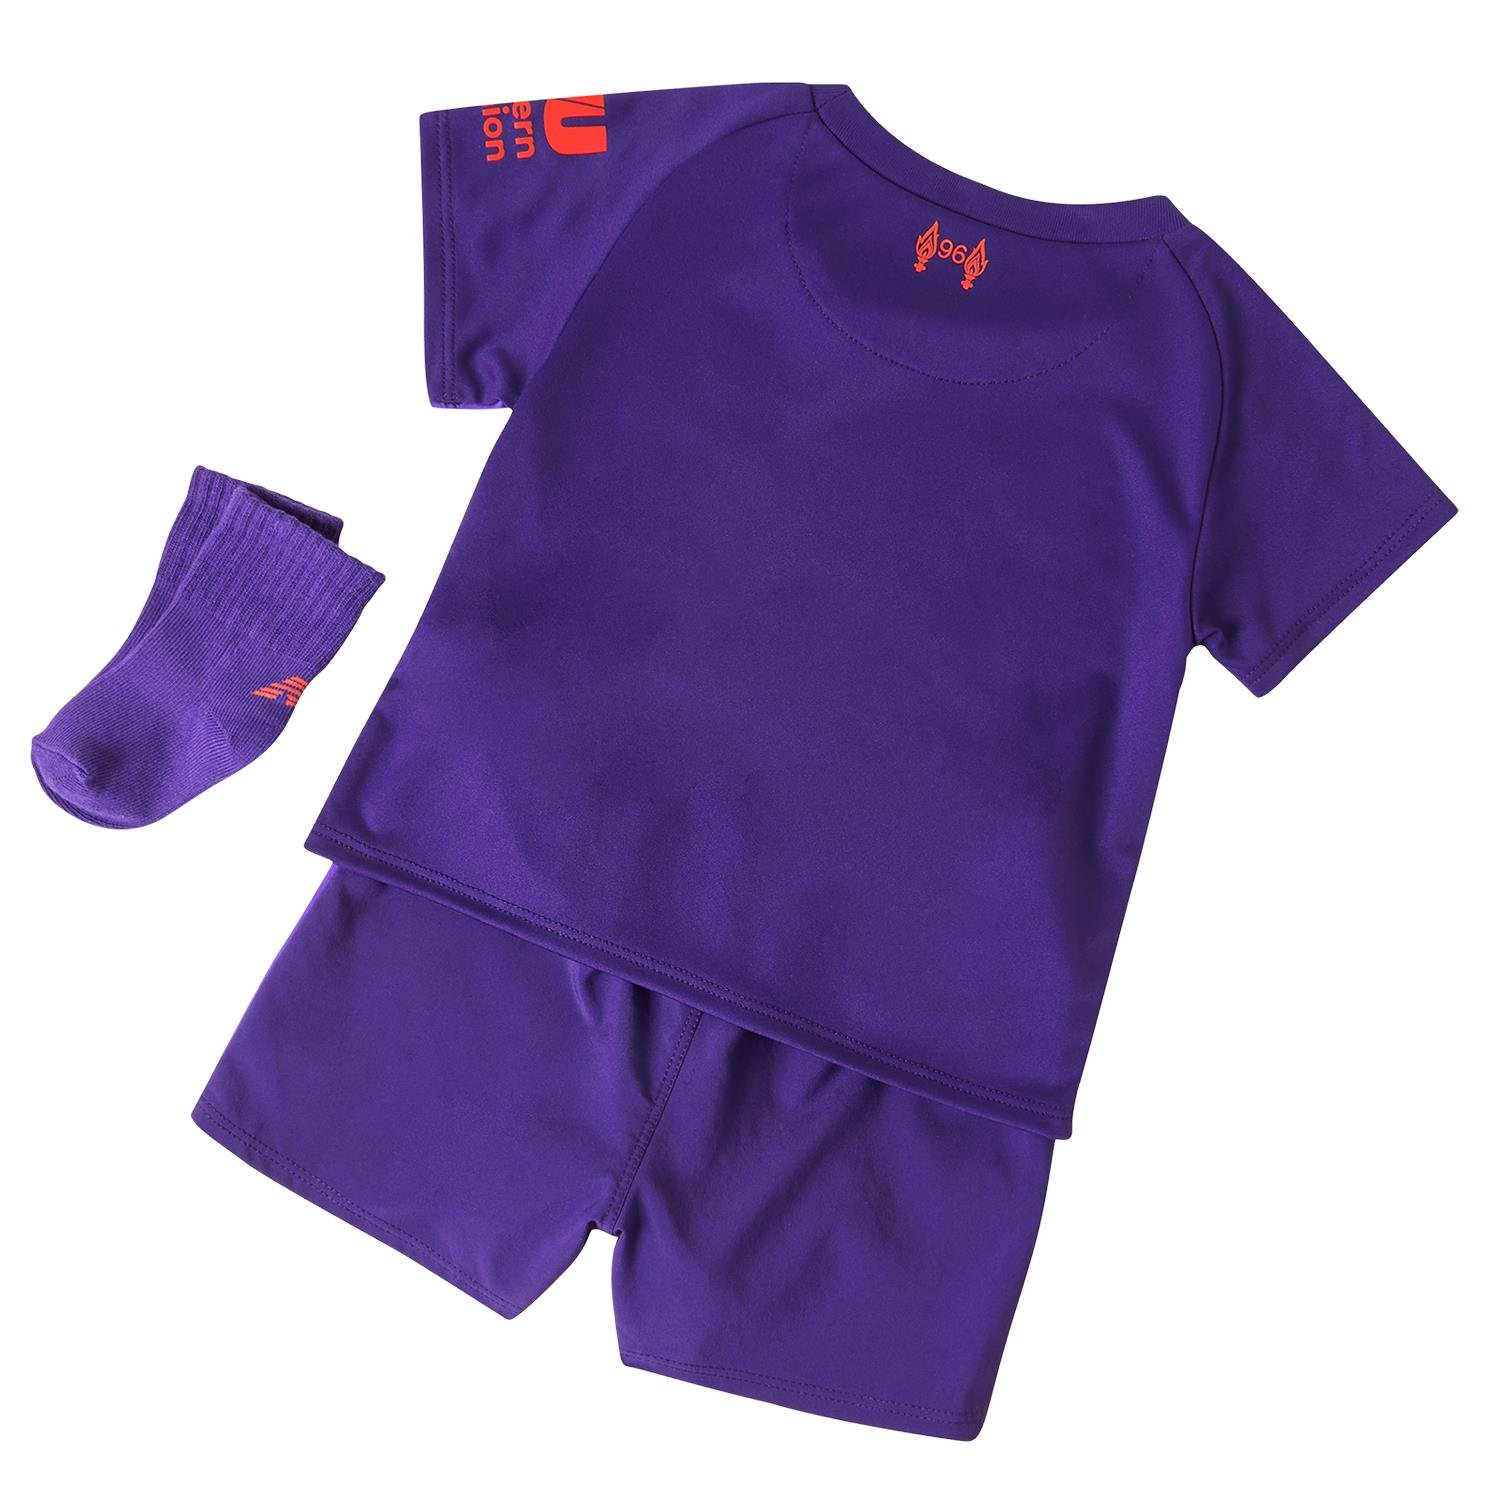 a226a1de2da New Balance Liverpool 2018 19 Kids Baby Toddler Away Football Kit Purple   Amazon.co.uk  Sports   Outdoors